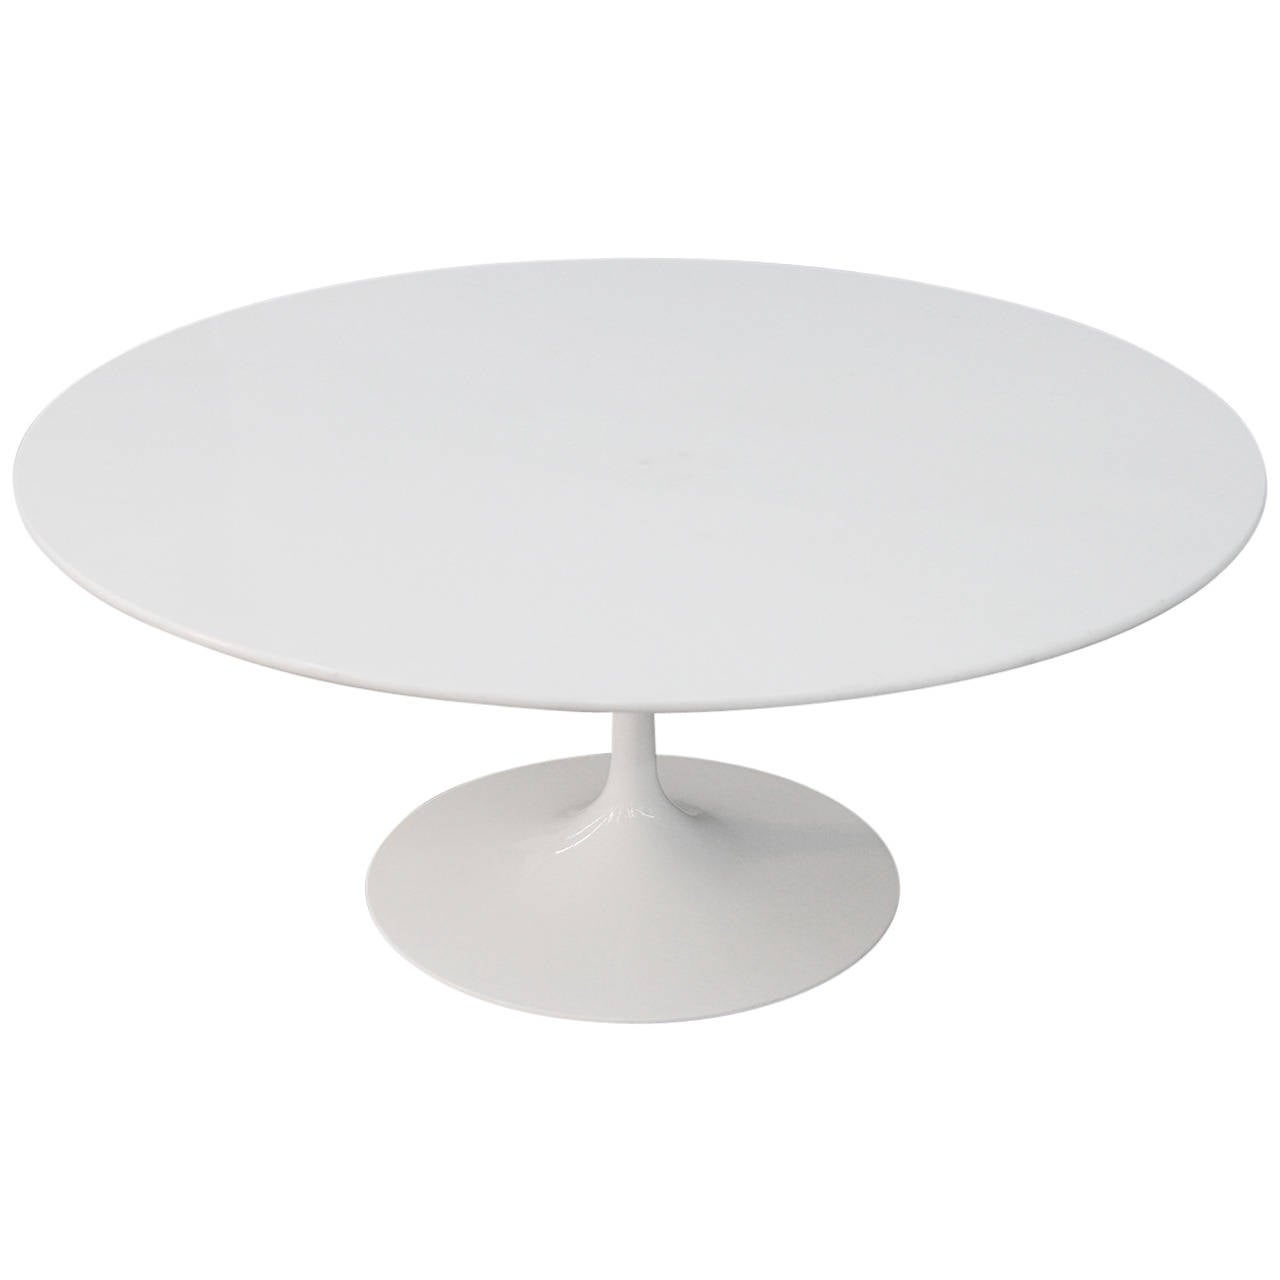 Marble Top Knoll Eero Saarinen Tulip Coffee Table At 1stdibs